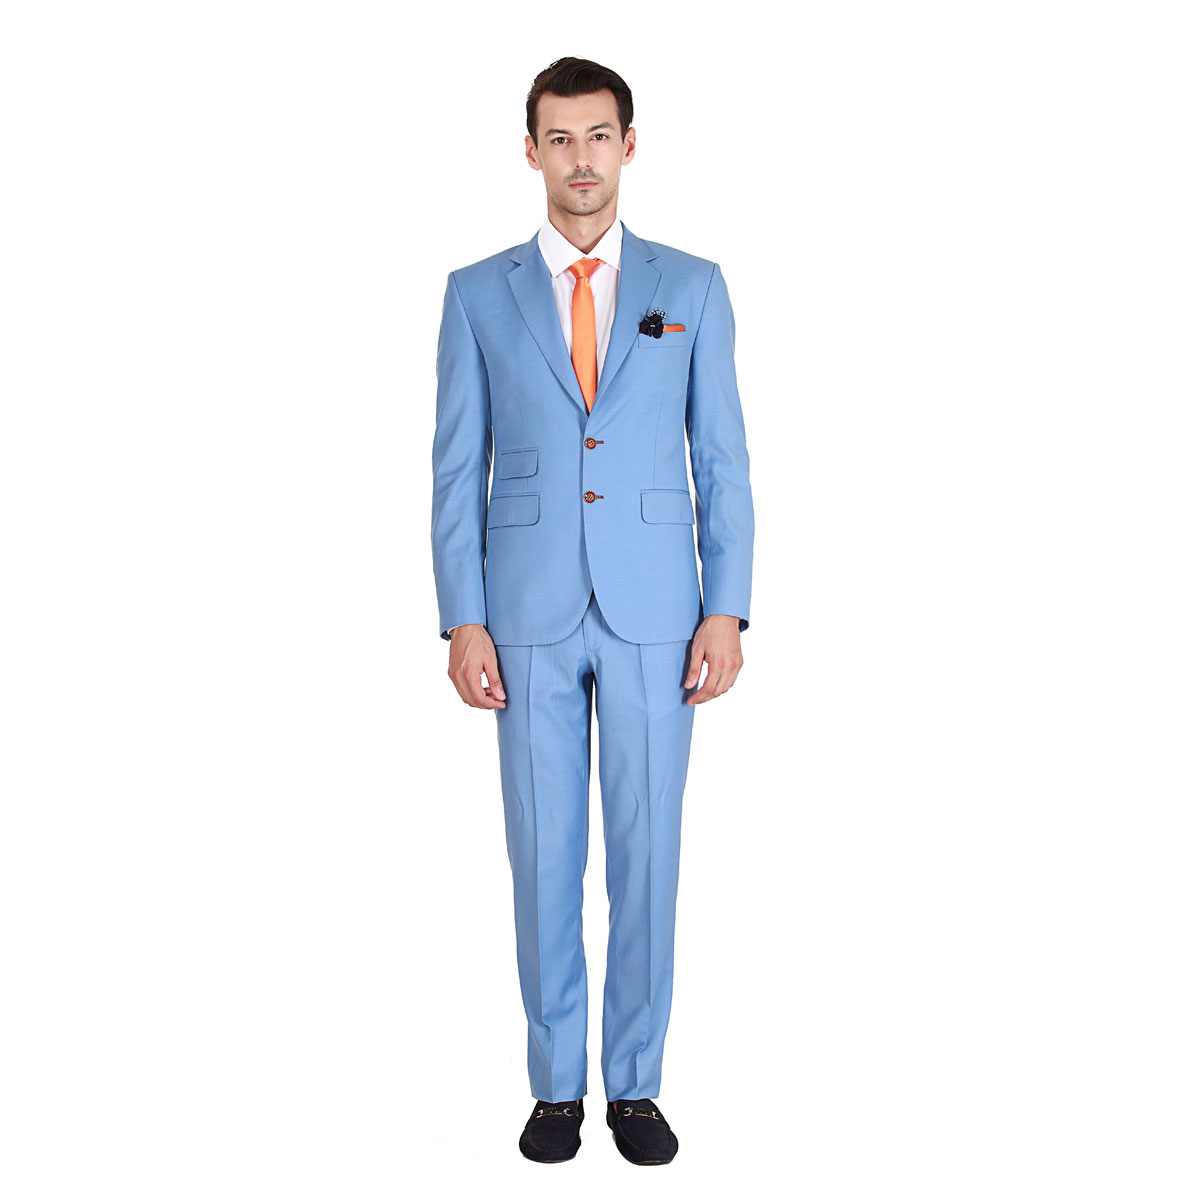 light men Suits, suit, we offer comprehensive collection of italian men's business suits and 3 button cool light weight wool suits at affordable prices.